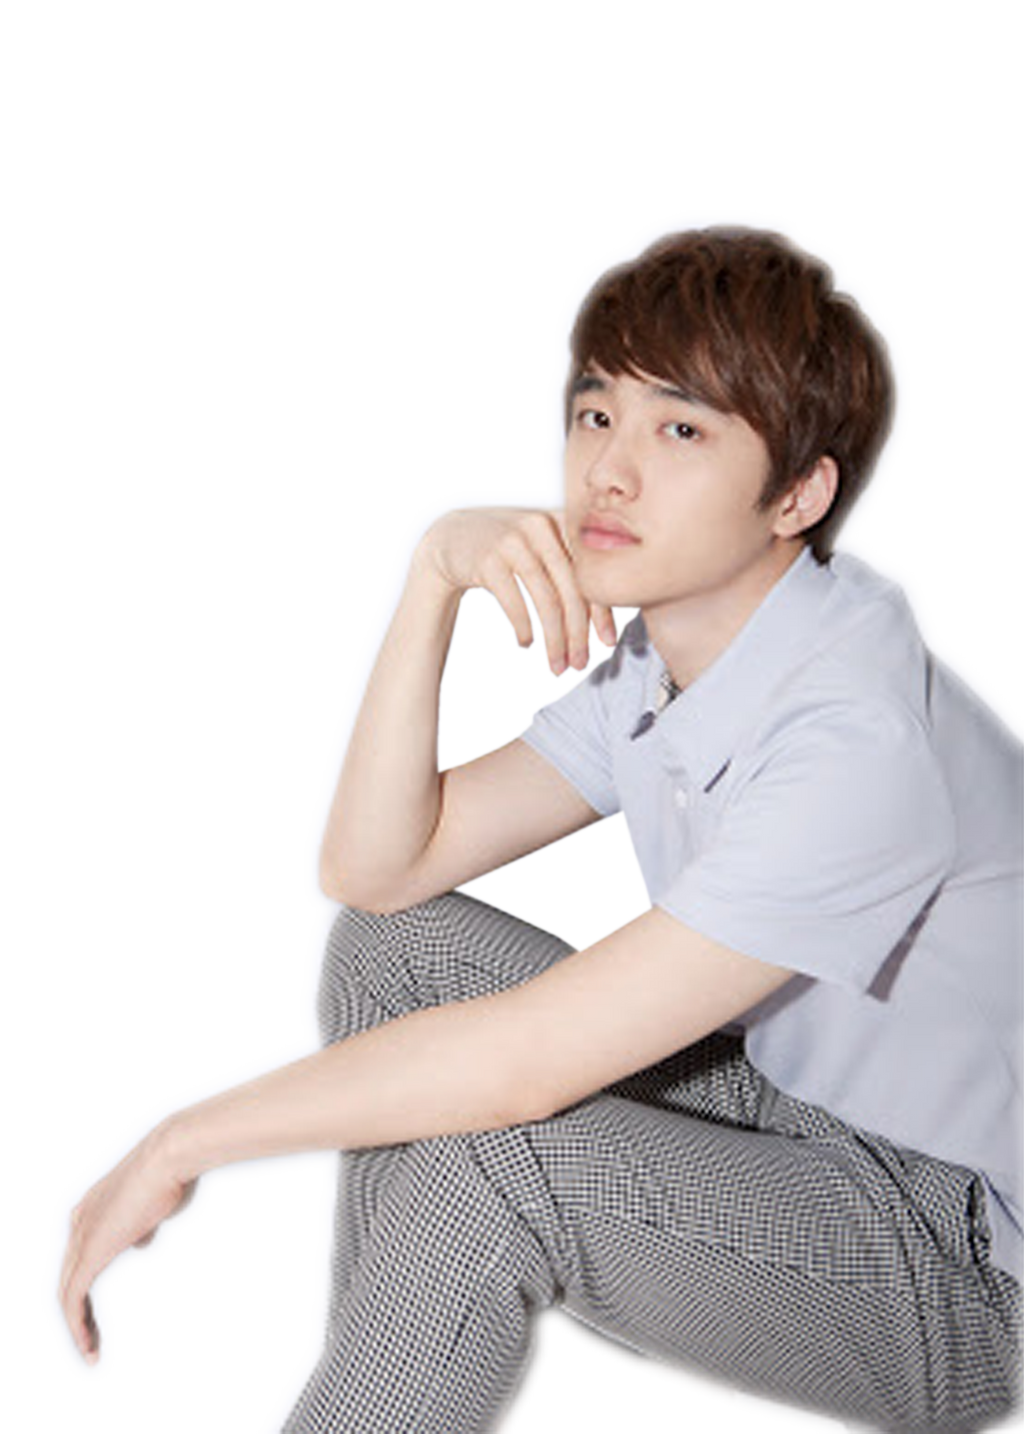 EXO Kyungsoo PNG (1) by Jocy12 on DeviantArt